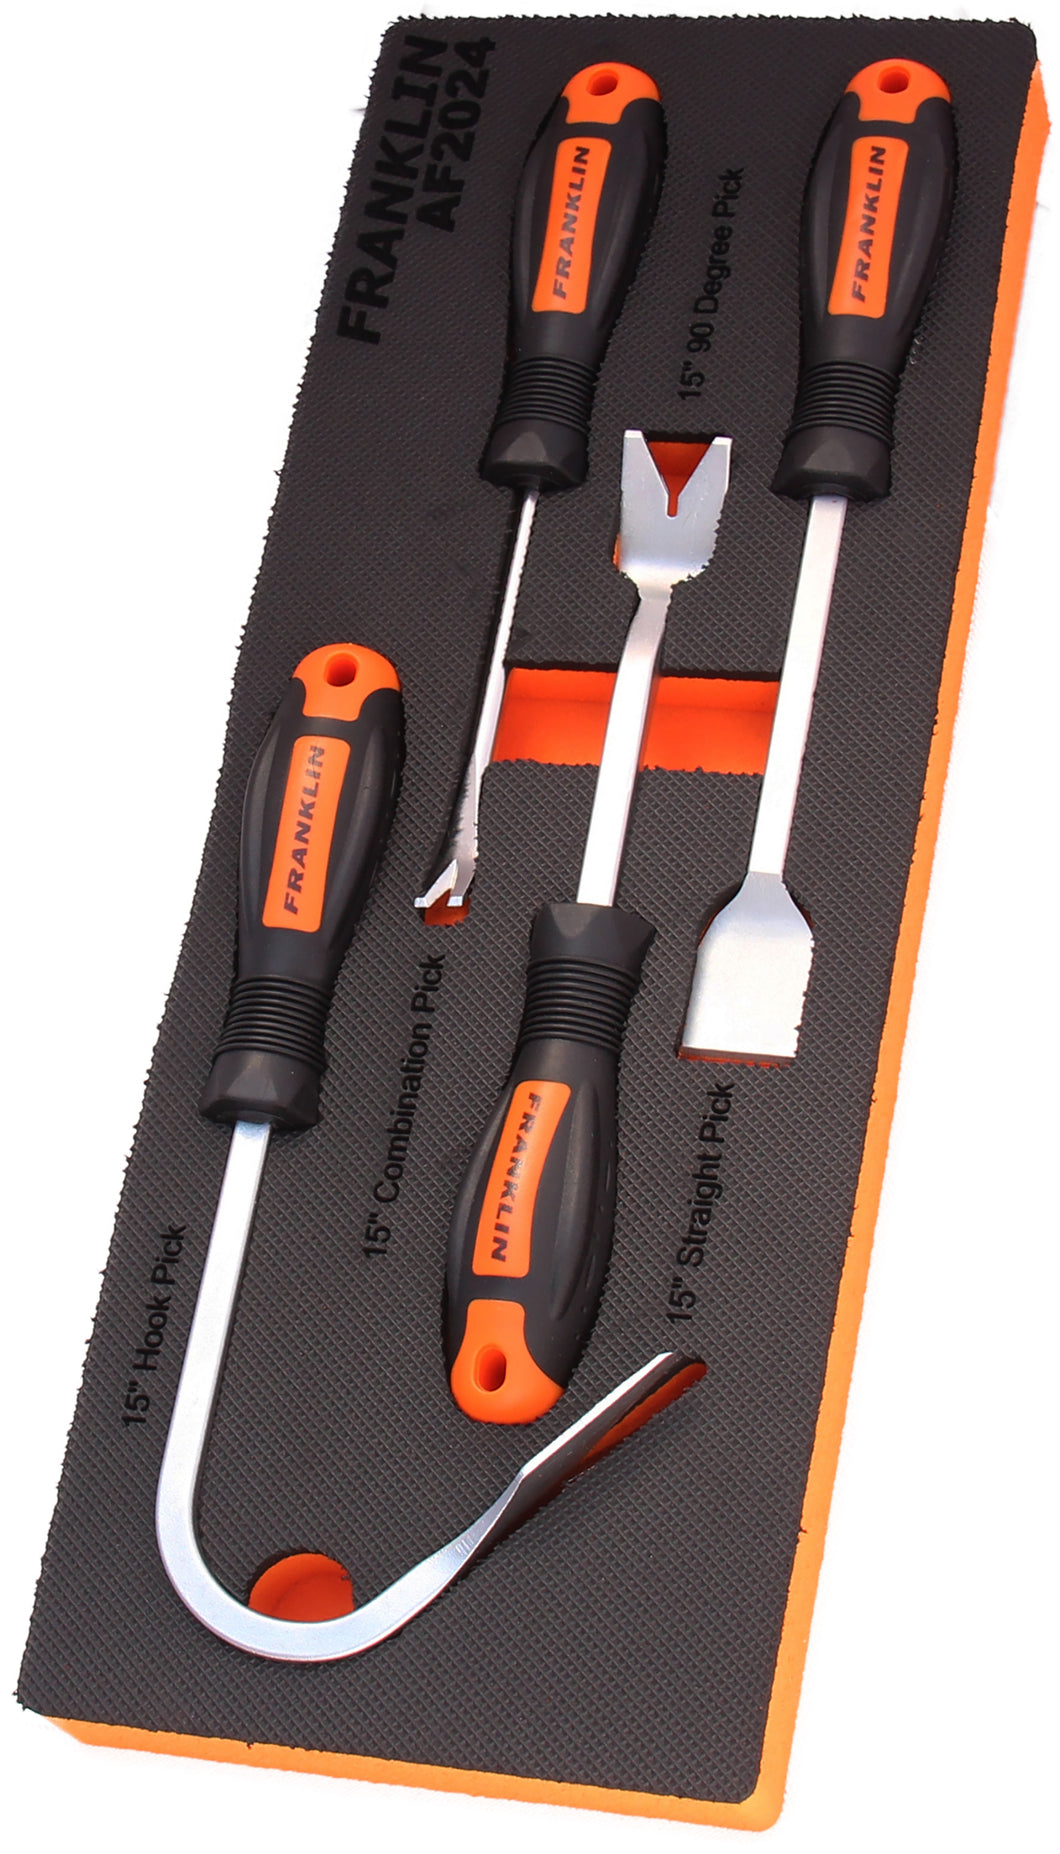 Franklin 4 pce Door Panel Remover Set